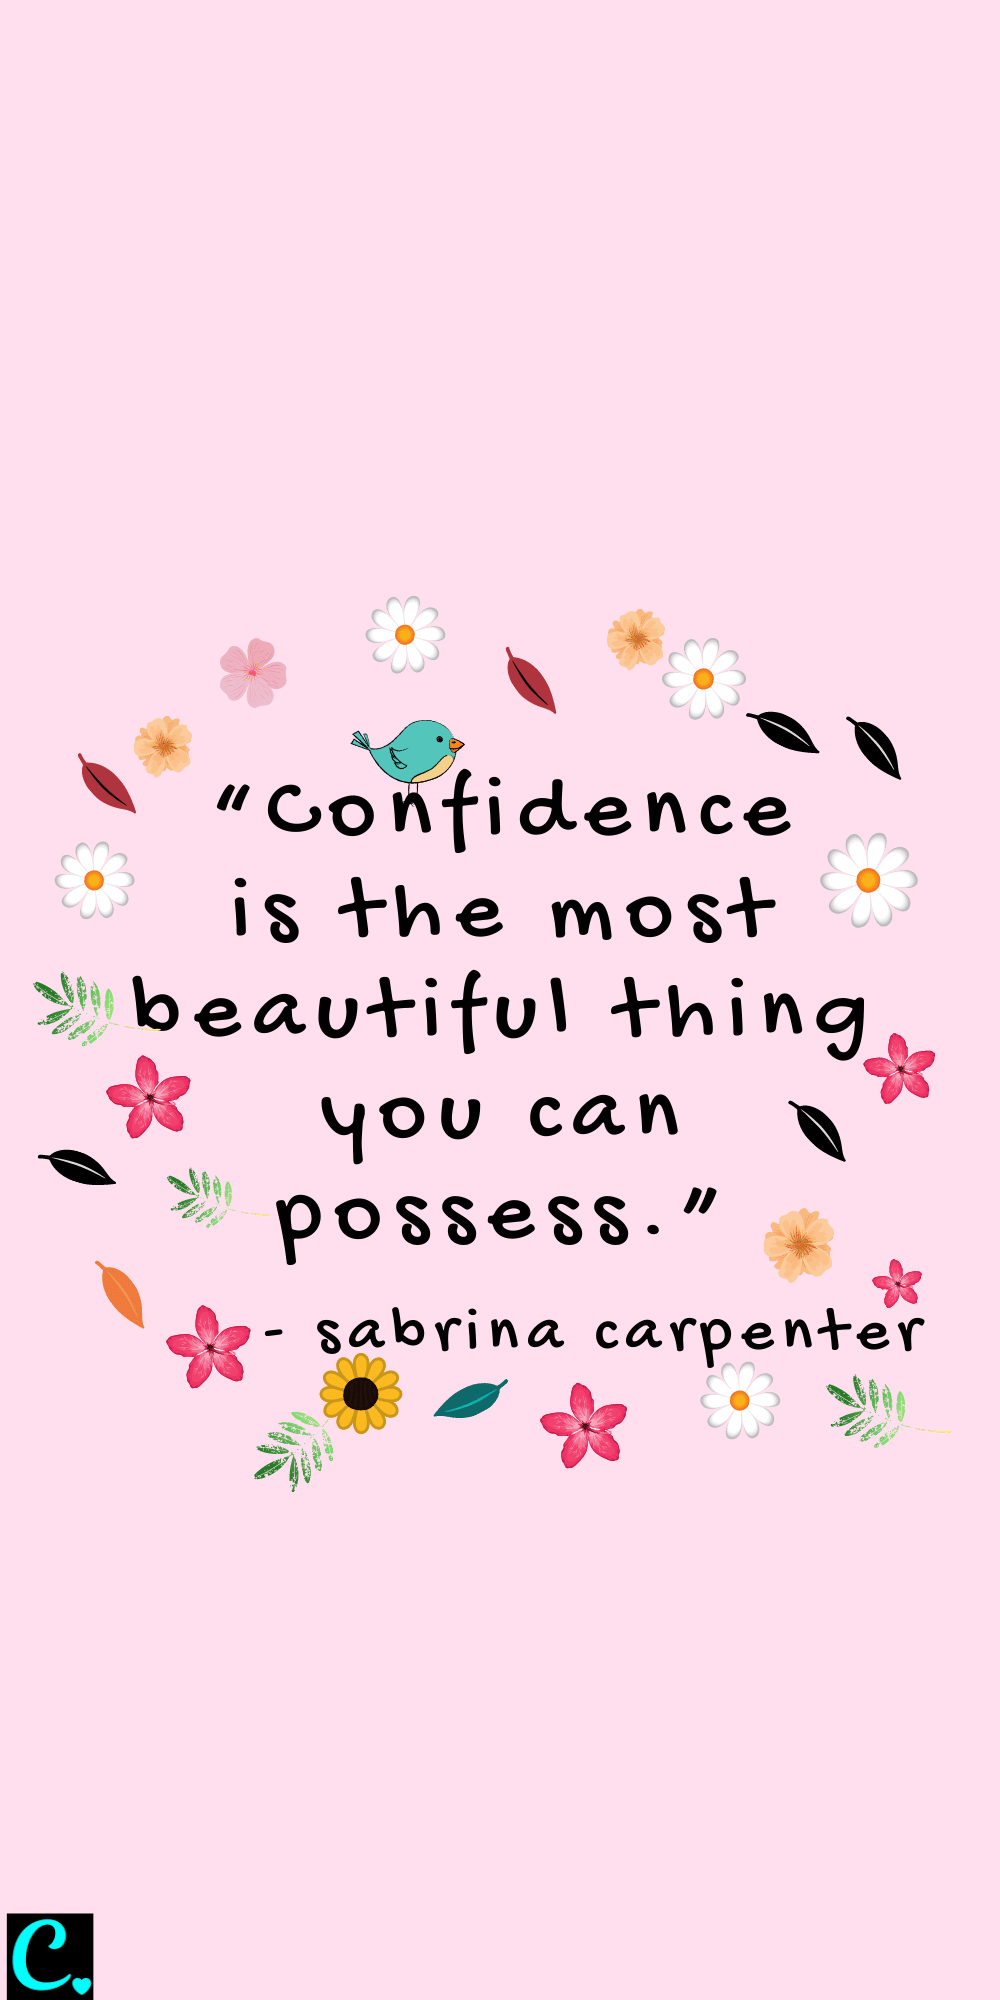 confidence is the most beautiful thing you can possess - glow up quote by Sabrina Carpenter